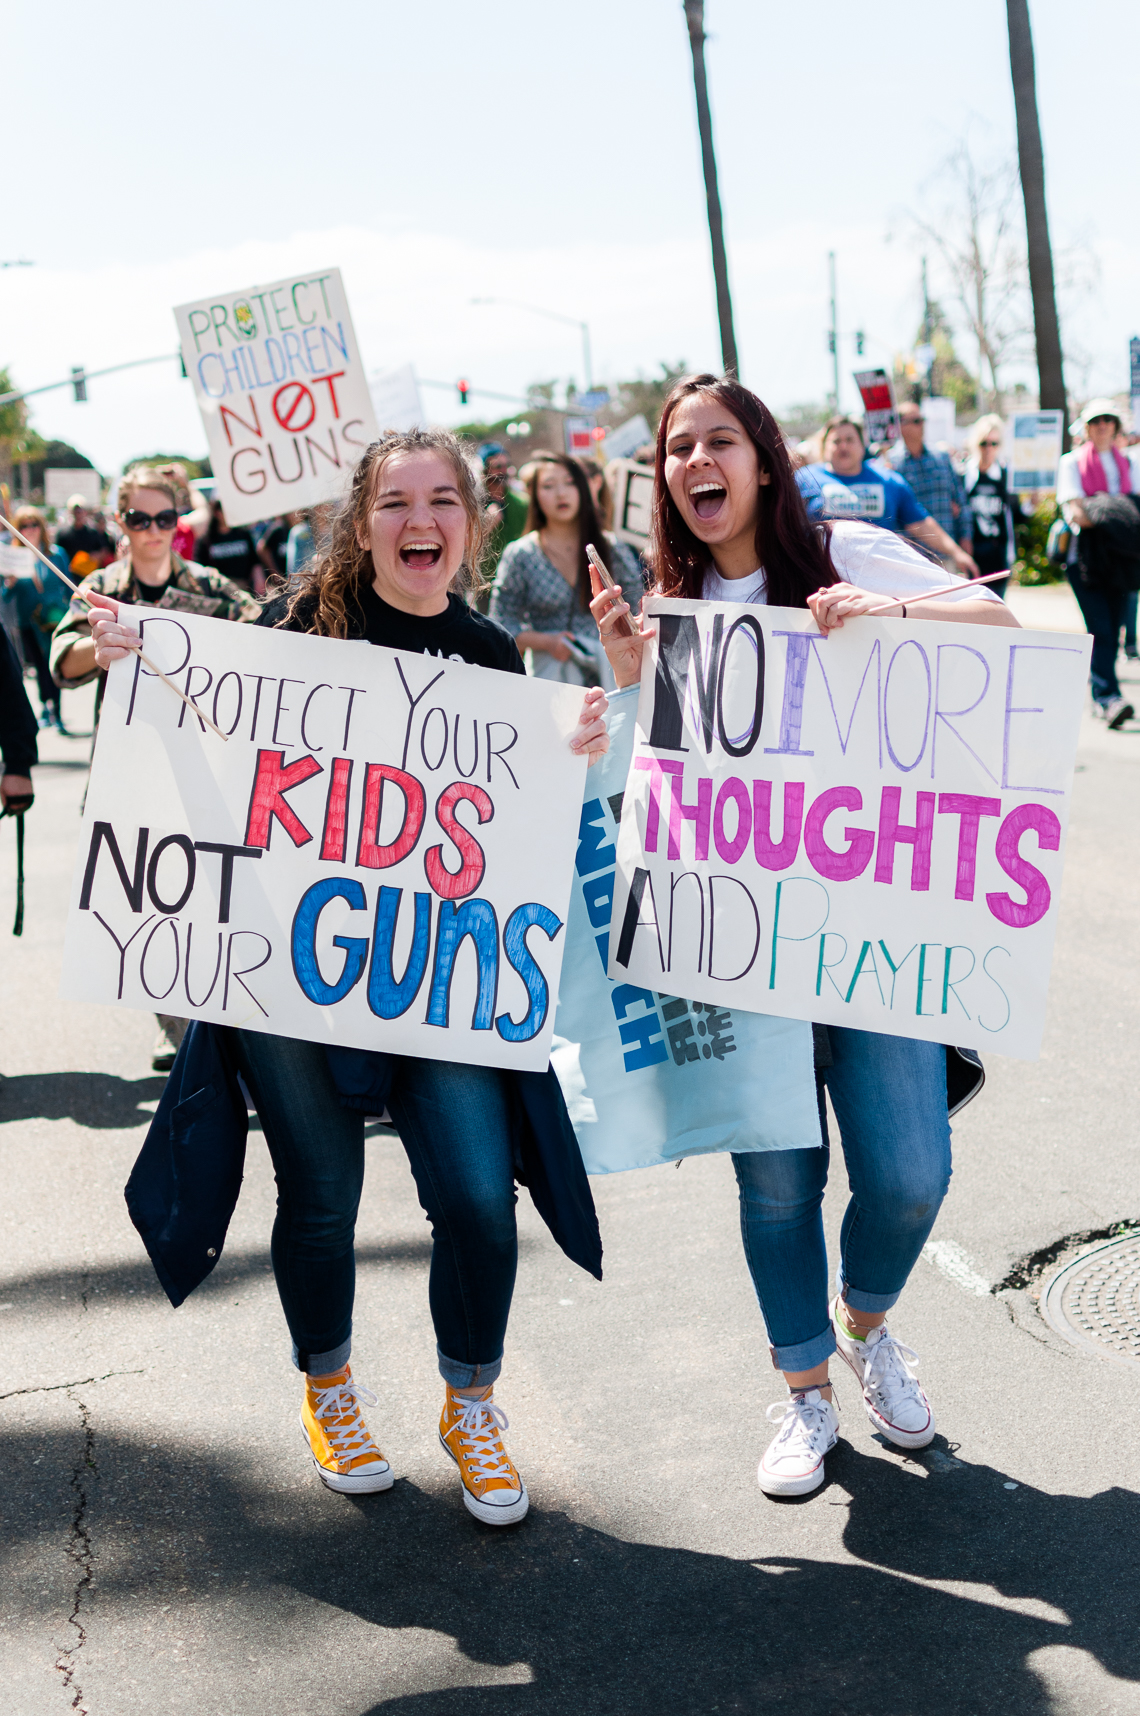 March for our lives portrait-011.jpg